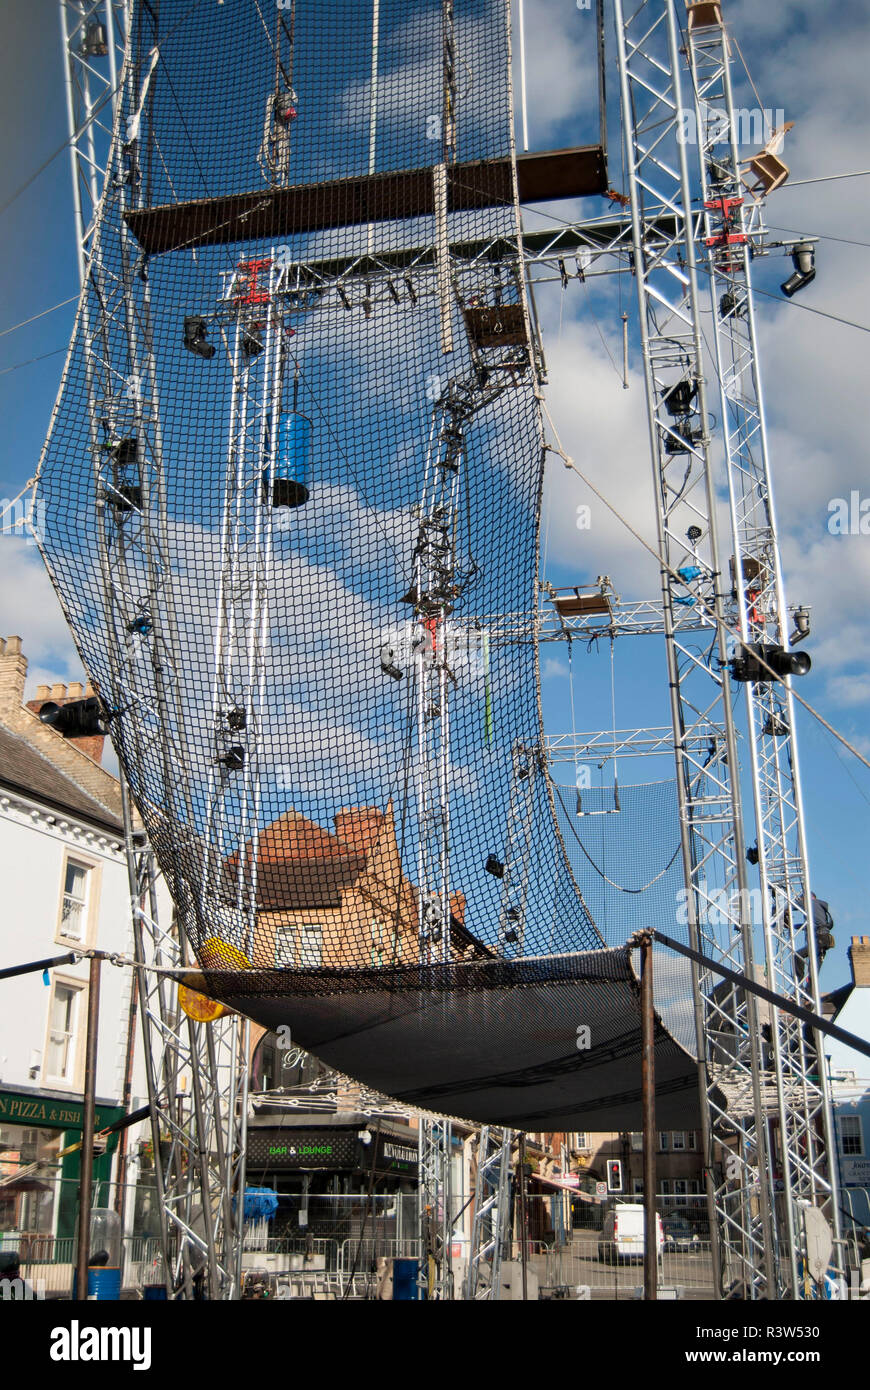 Grantham/England-Sptember 28, 2018.Trapeze artists structure for the Gravity Fields 2018 event at Market place-Grantham - Stock Image